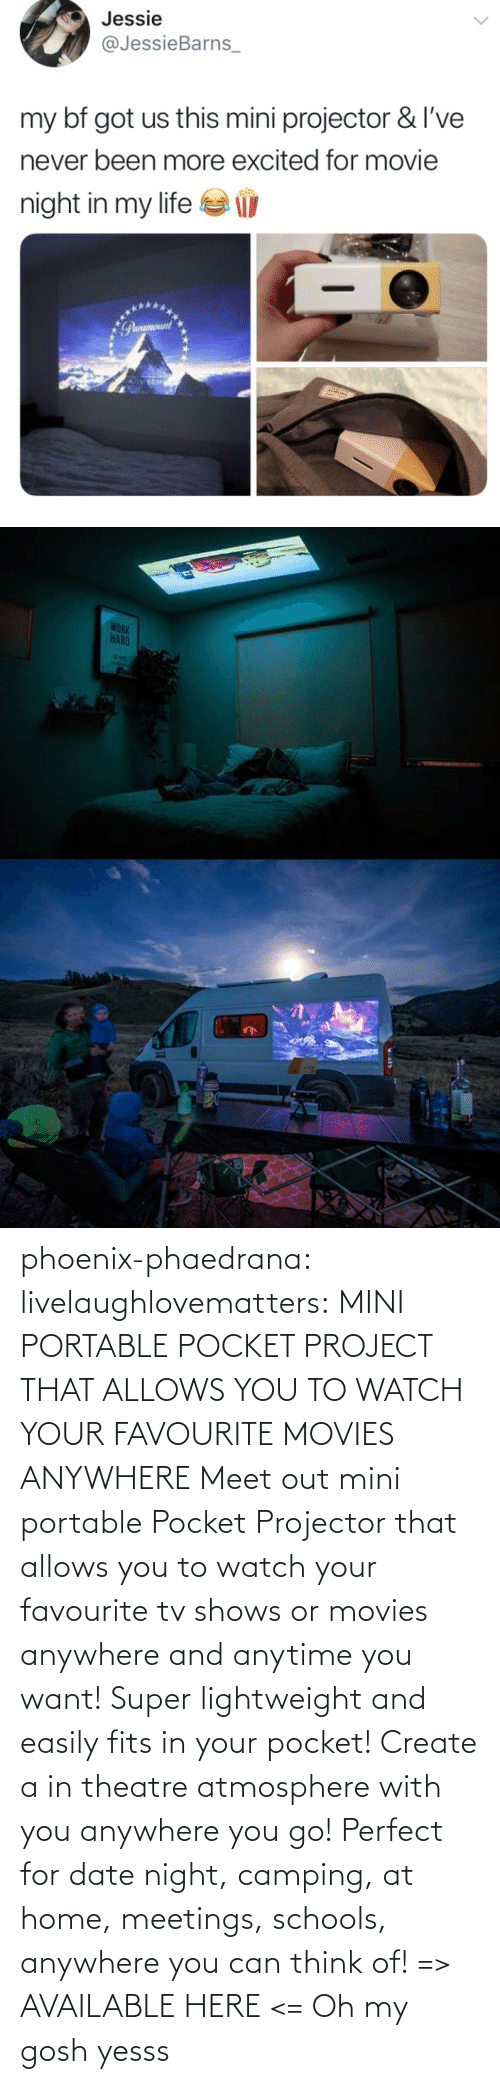 portable: phoenix-phaedrana: livelaughlovematters:  MINI PORTABLE POCKET PROJECT THAT ALLOWS YOU TO WATCH YOUR FAVOURITE MOVIES ANYWHERE Meet out mini portable Pocket Projector that allows you to watch your favourite tv shows or movies anywhere and anytime you want! Super lightweight and easily fits in your pocket! Create a in theatre atmosphere with you anywhere you go! Perfect for date night, camping, at home, meetings, schools, anywhere you can think of! => AVAILABLE HERE <=  Oh my gosh yesss